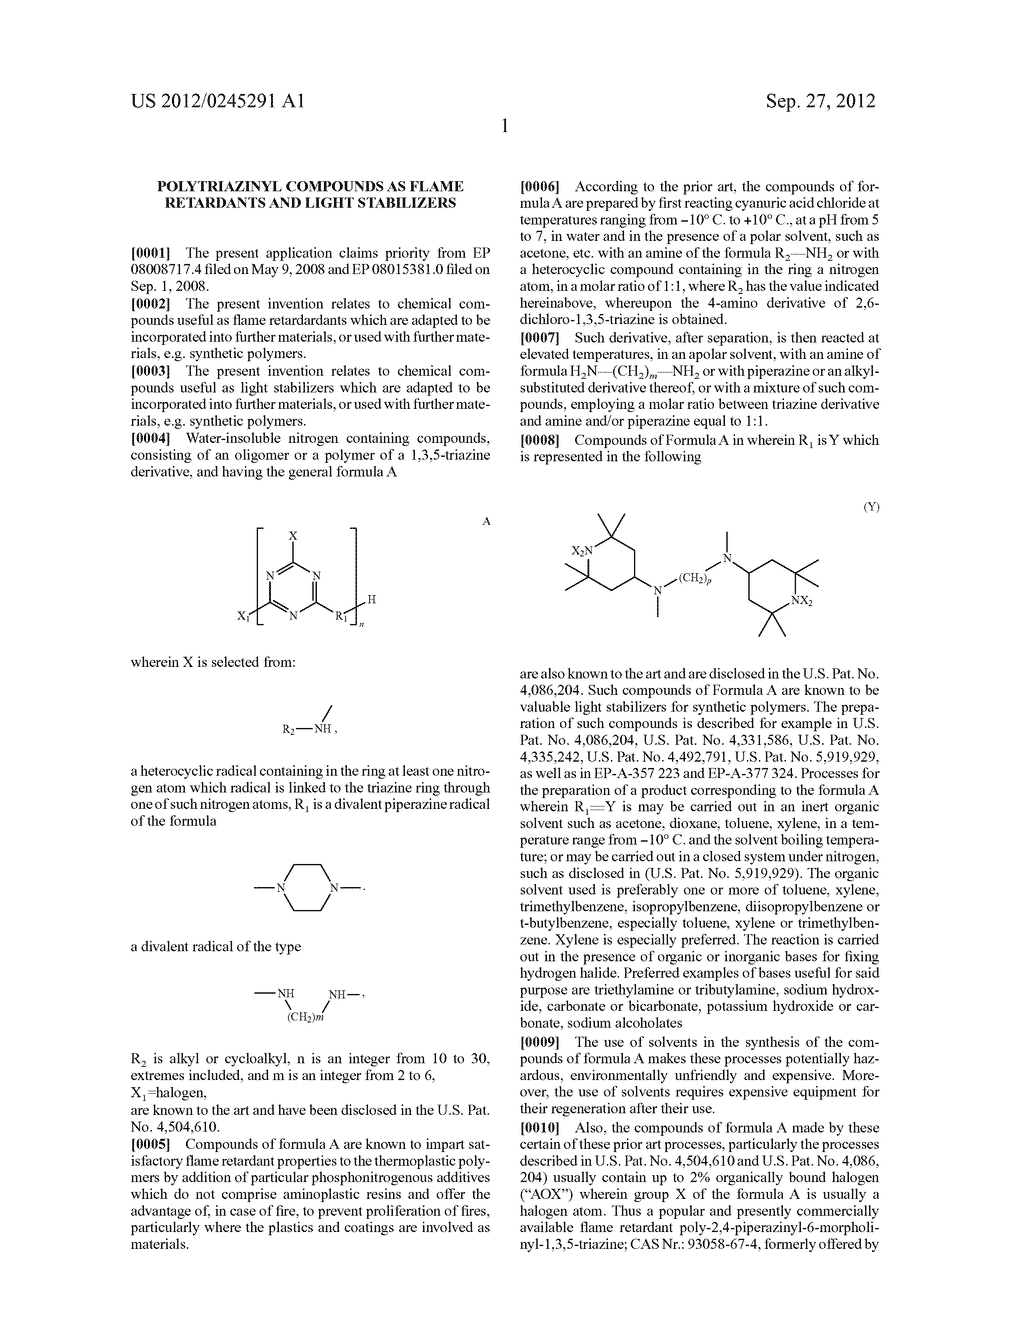 Polytriazinyl Compounds as Flame Retardants and Light Stabilizers - diagram, schematic, and image 02